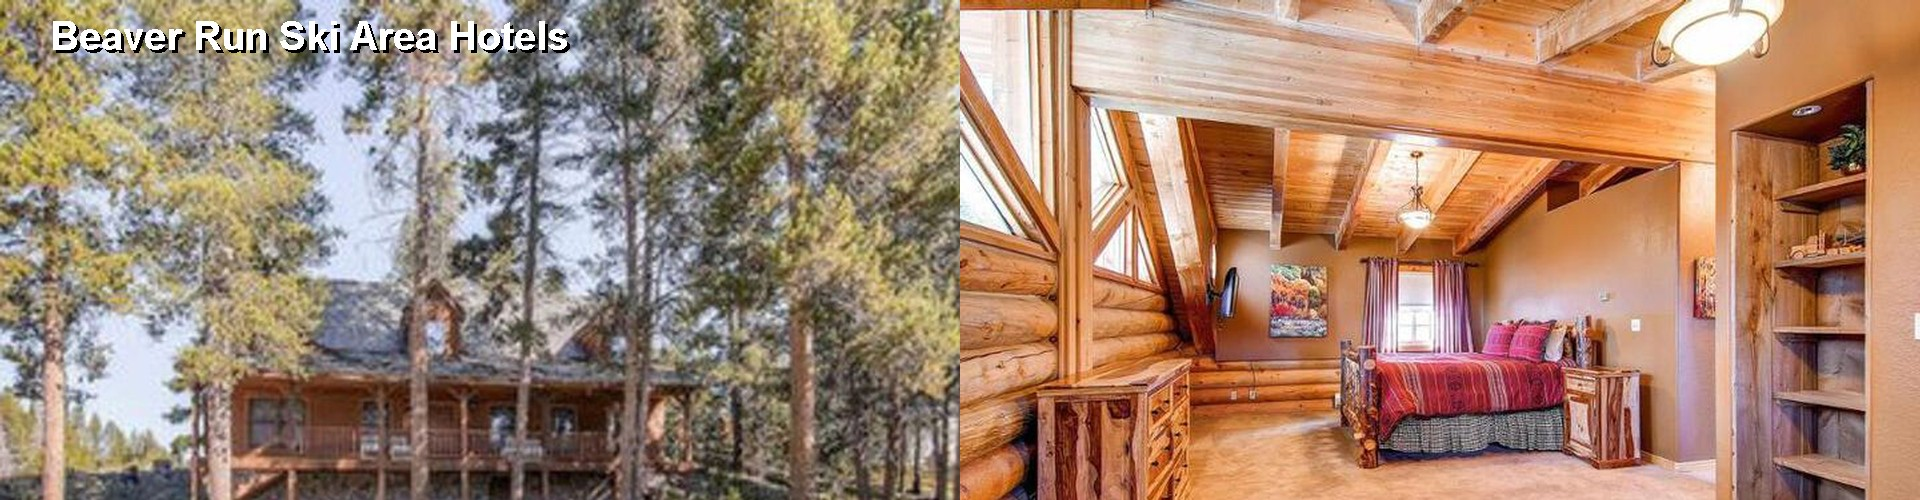 5 Best Hotels near Beaver Run Ski Area